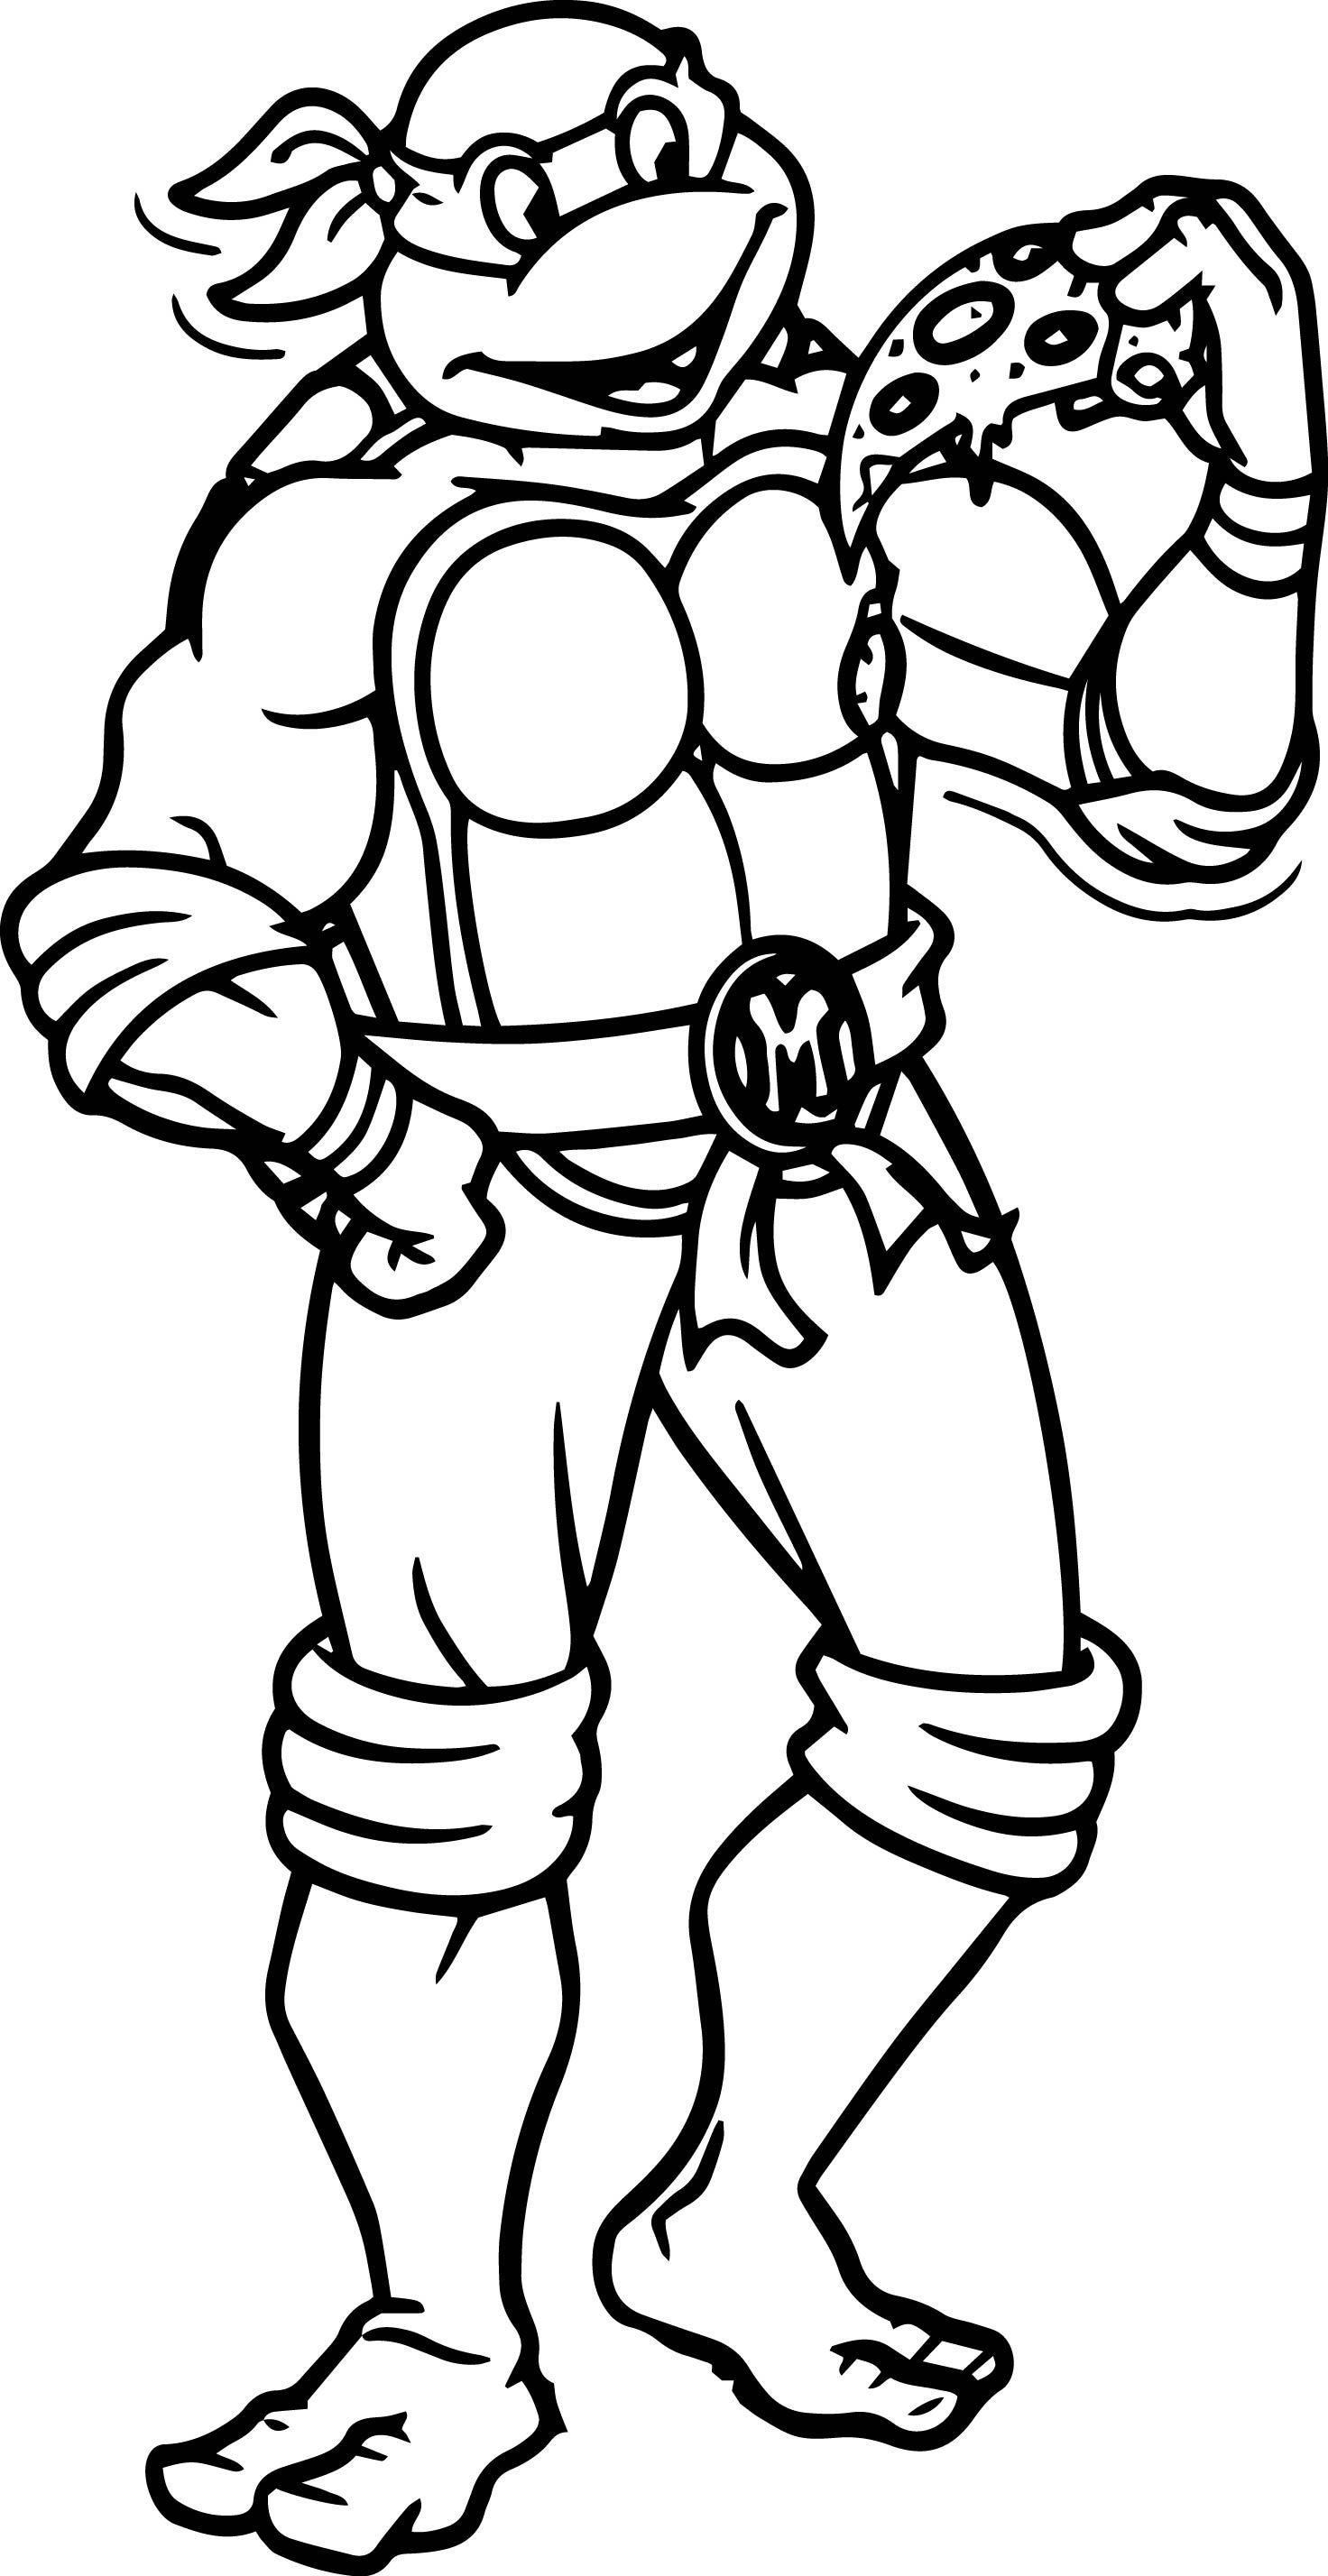 Ninja Turtle Cartoon Coloring Pages | Pinterest | Ausmalbilder ...